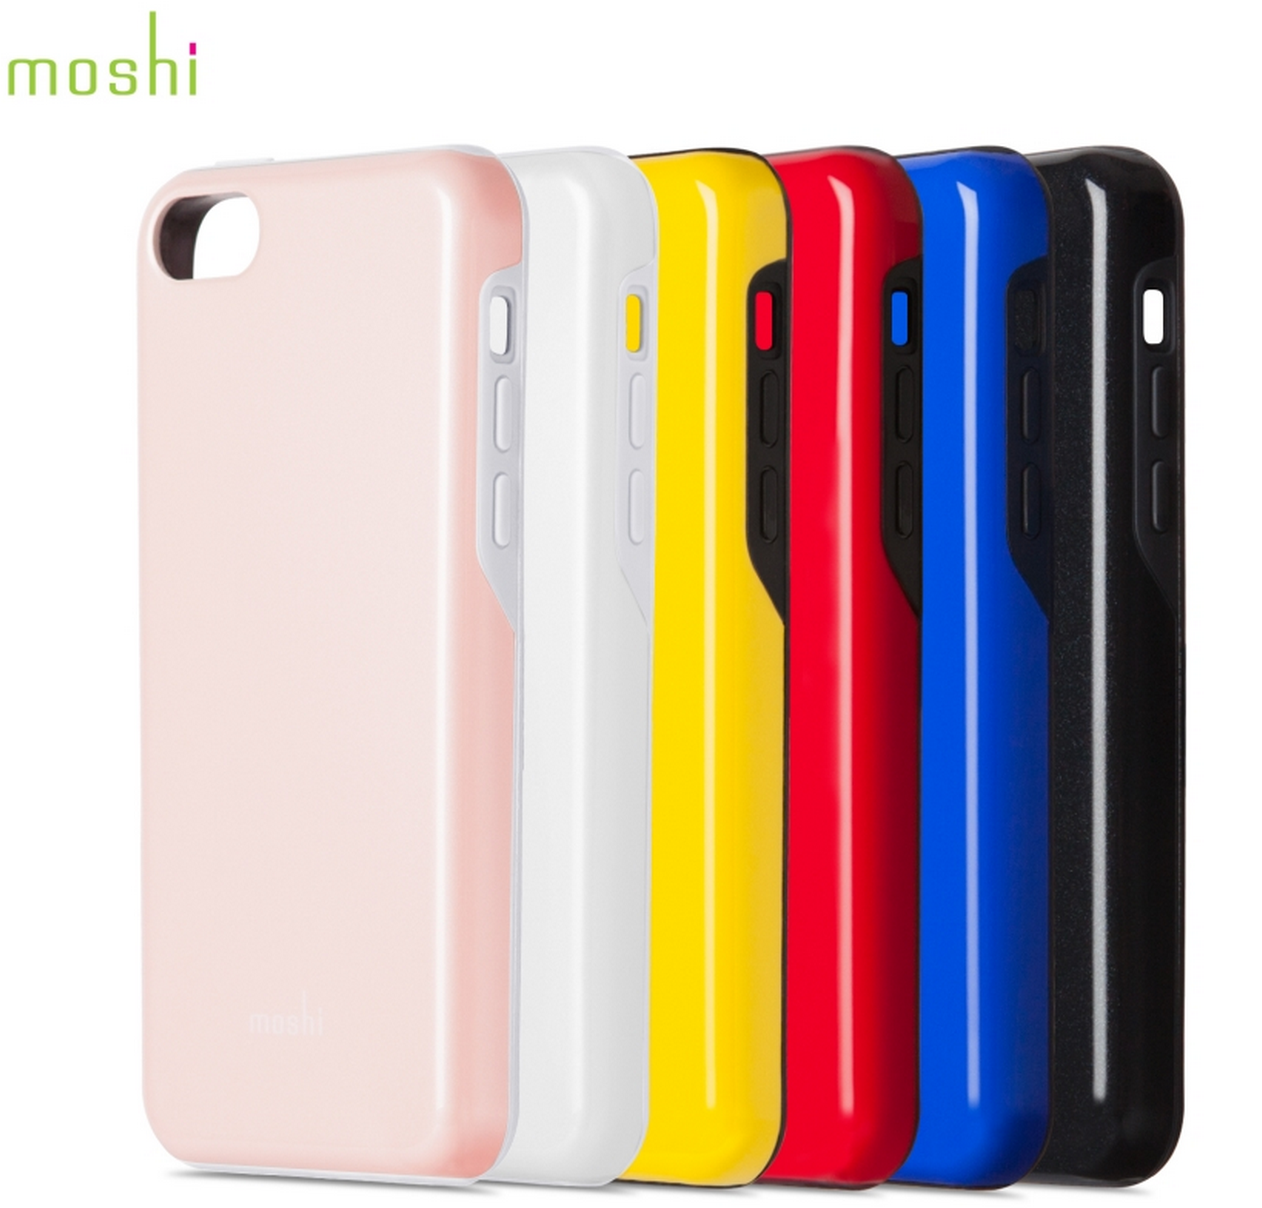 new photos 75a00 efb8e The best iPhone 5c (and iPhone 5s) cases already available online ...